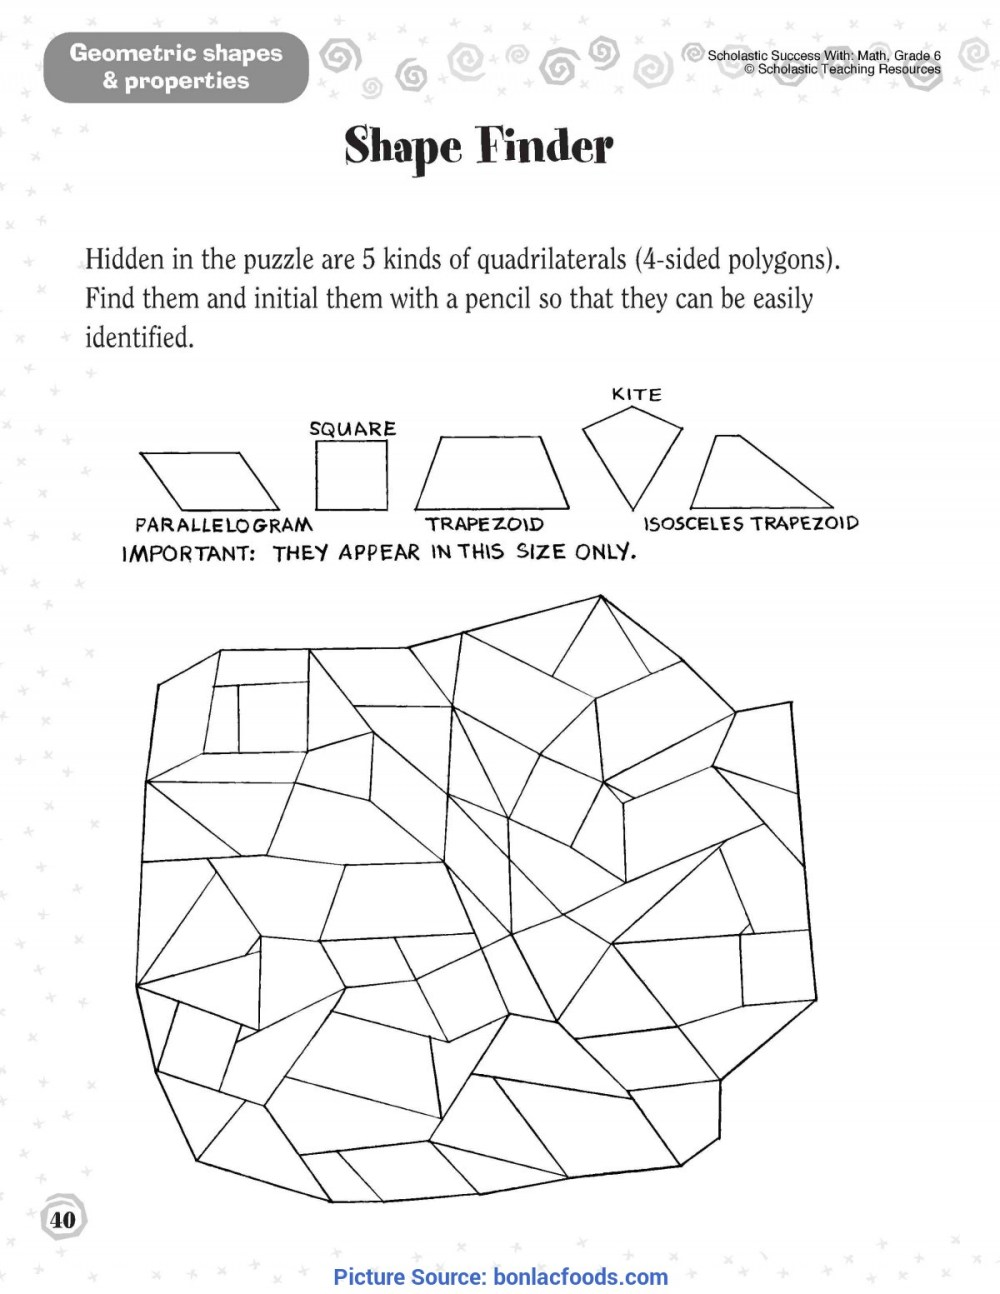 medium resolution of Second Grade Plane Shapes Worksheet   Printable Worksheets and Activities  for Teachers